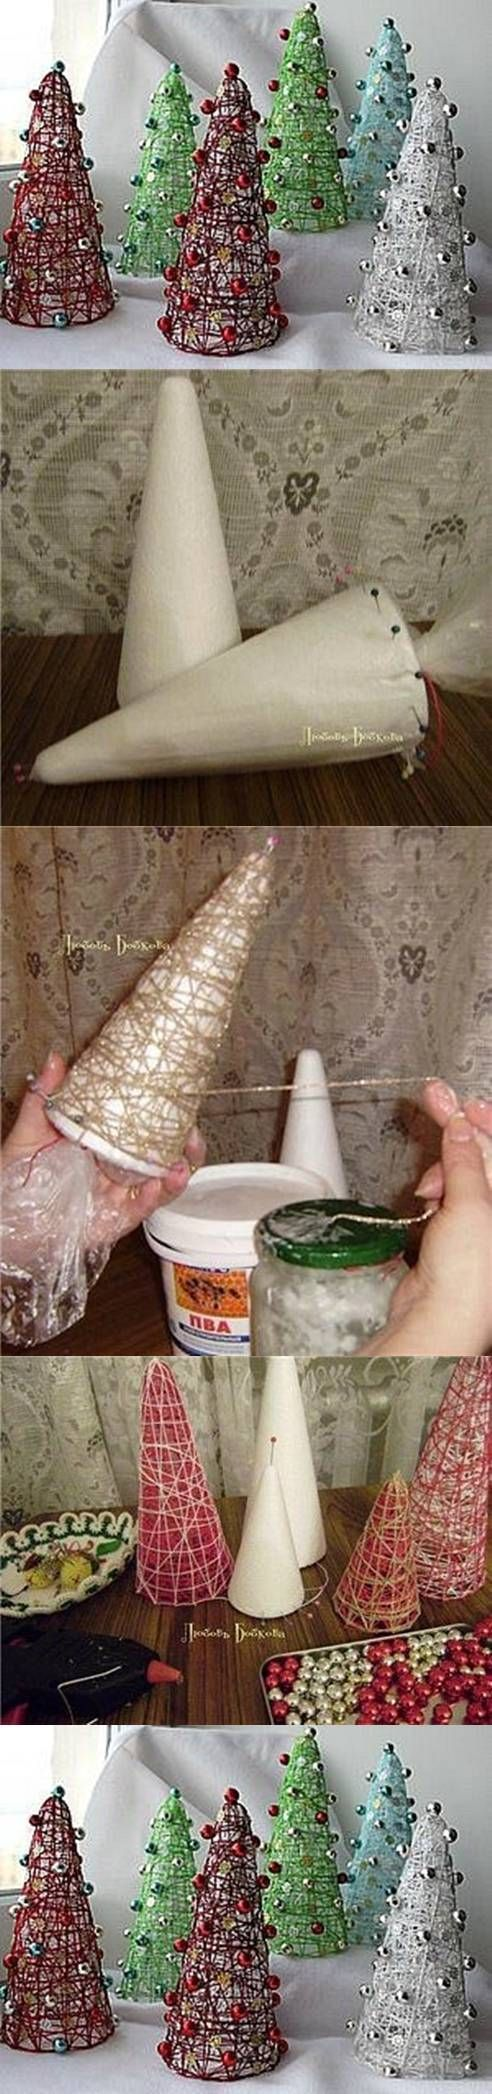 DIY Cute Decorative Christmas Trees. I would skip the bells/ornaments and keep it as is.  Could reuse the same styrofoam cone from the craft store, twine/string, and starch or adhesive spray... ?